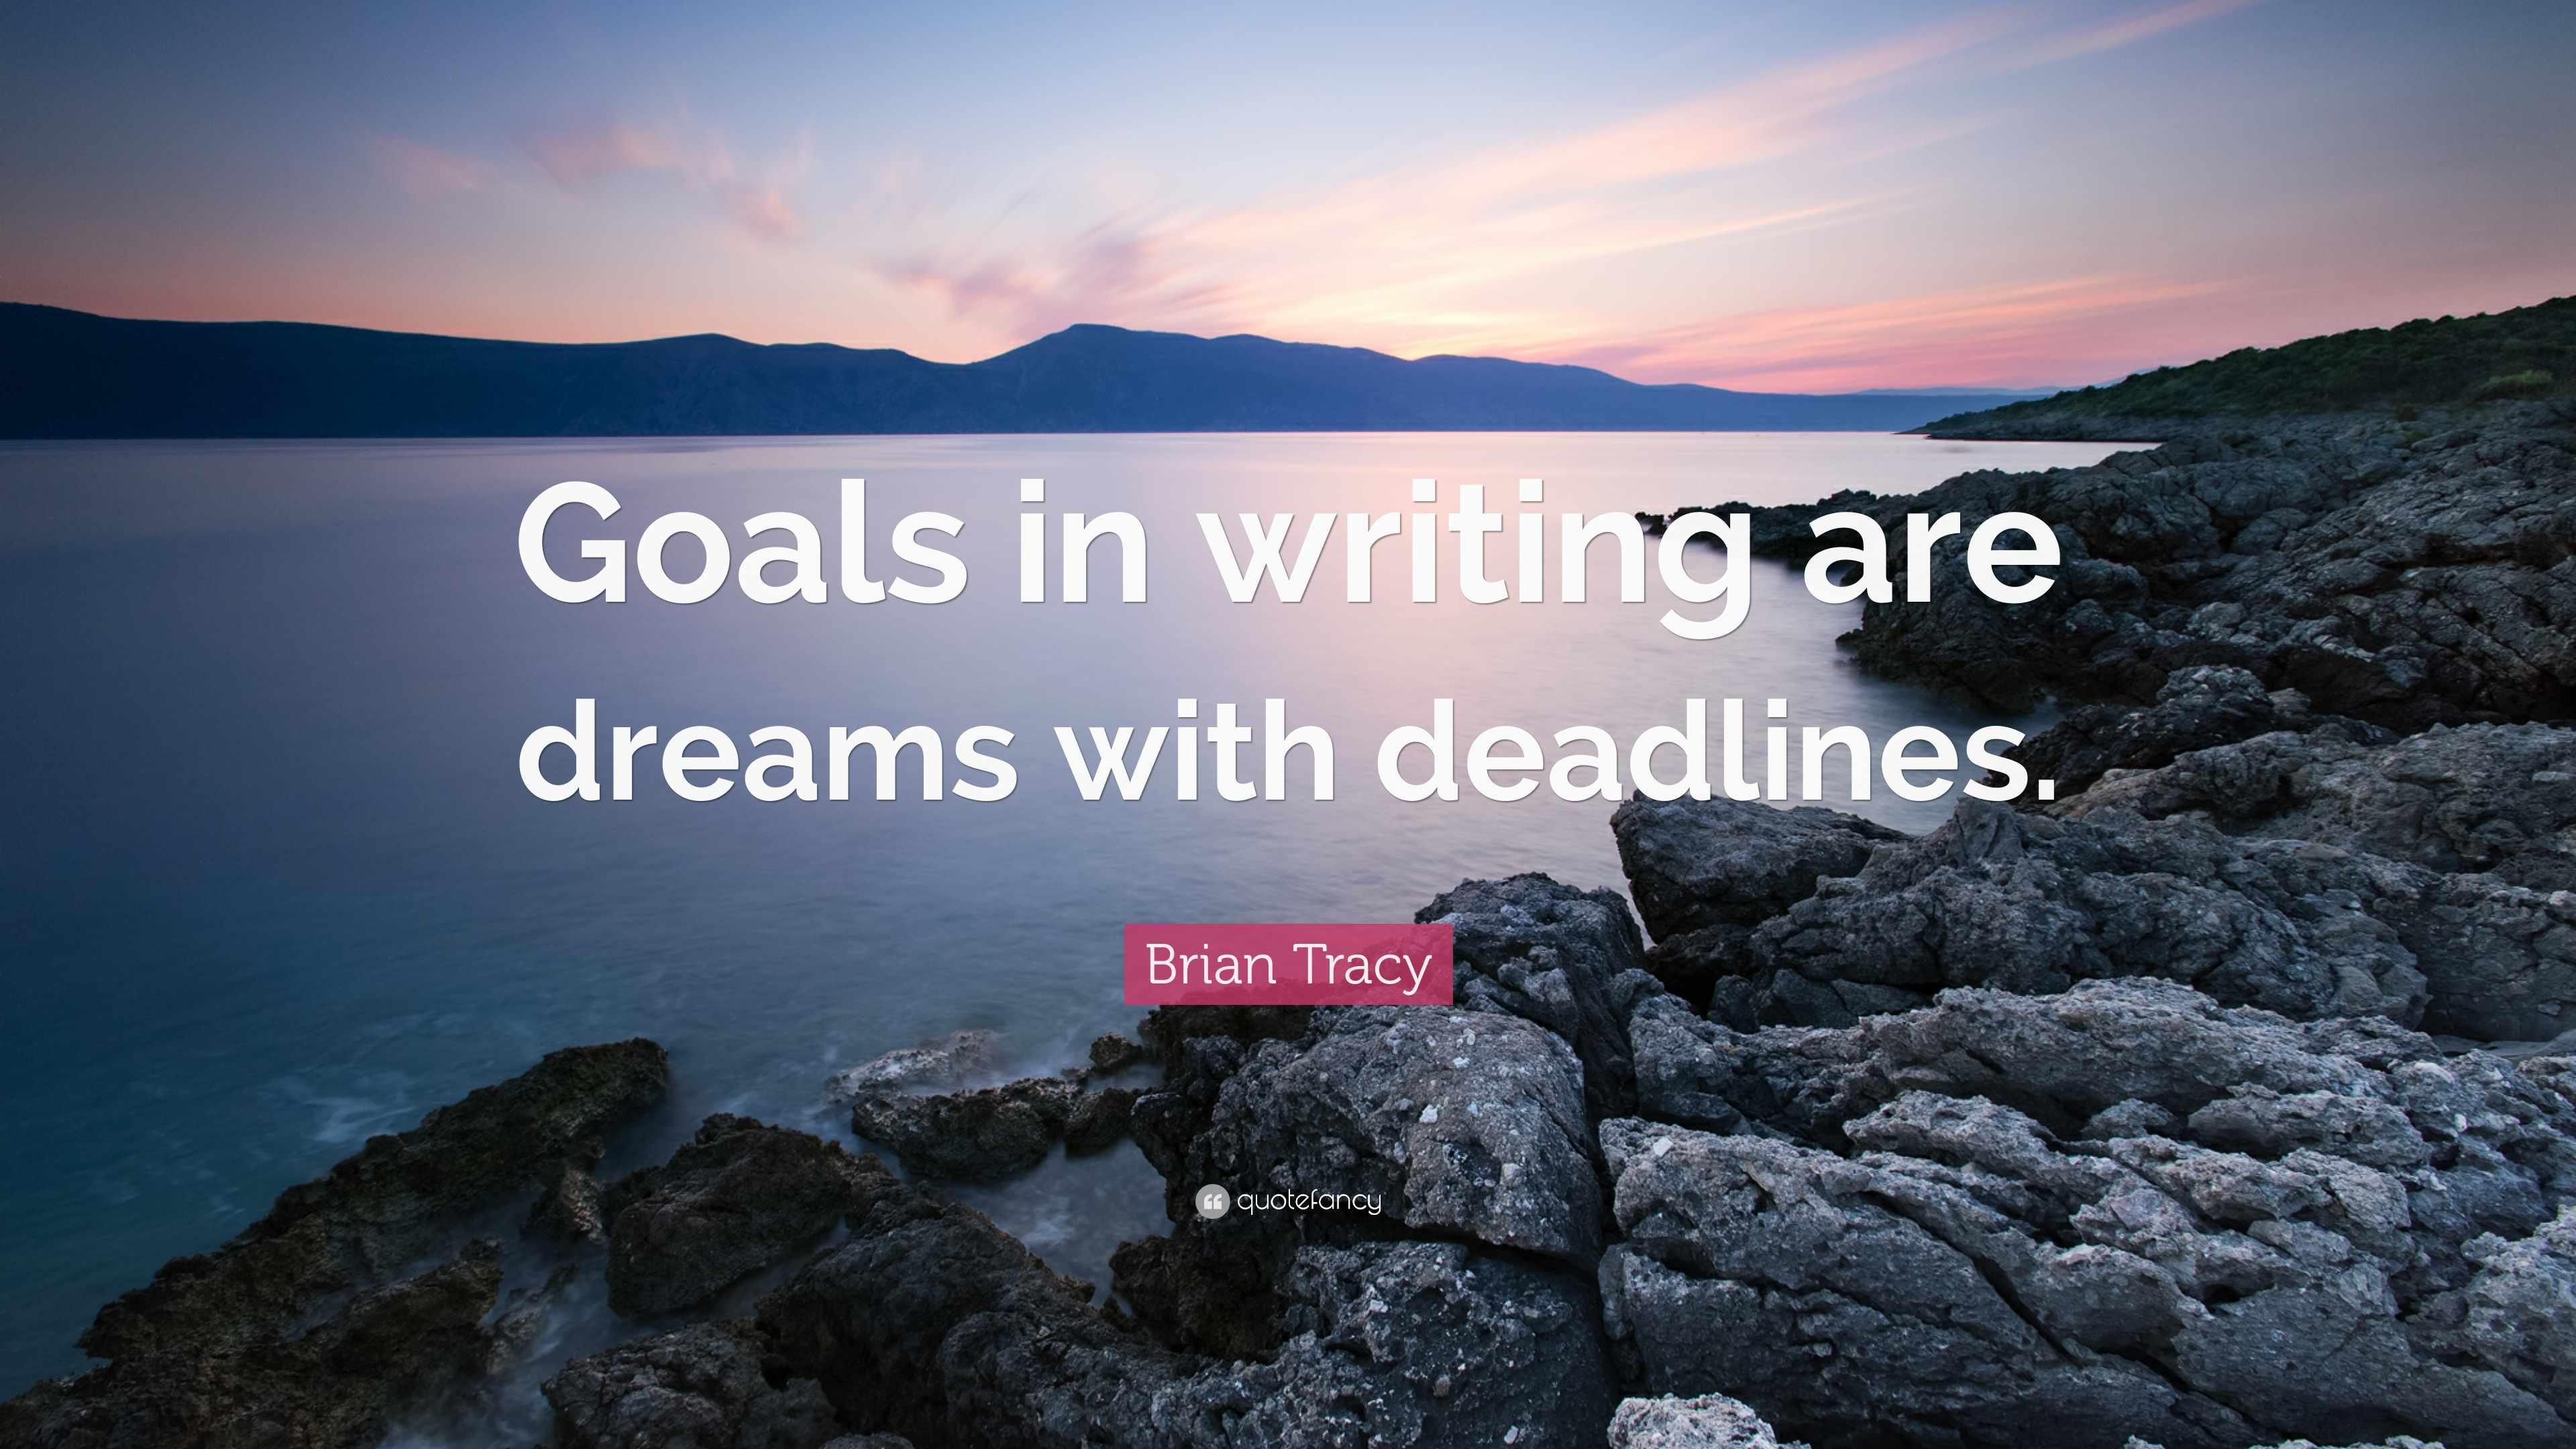 Goals in writing are dreams with deadlines for 1099